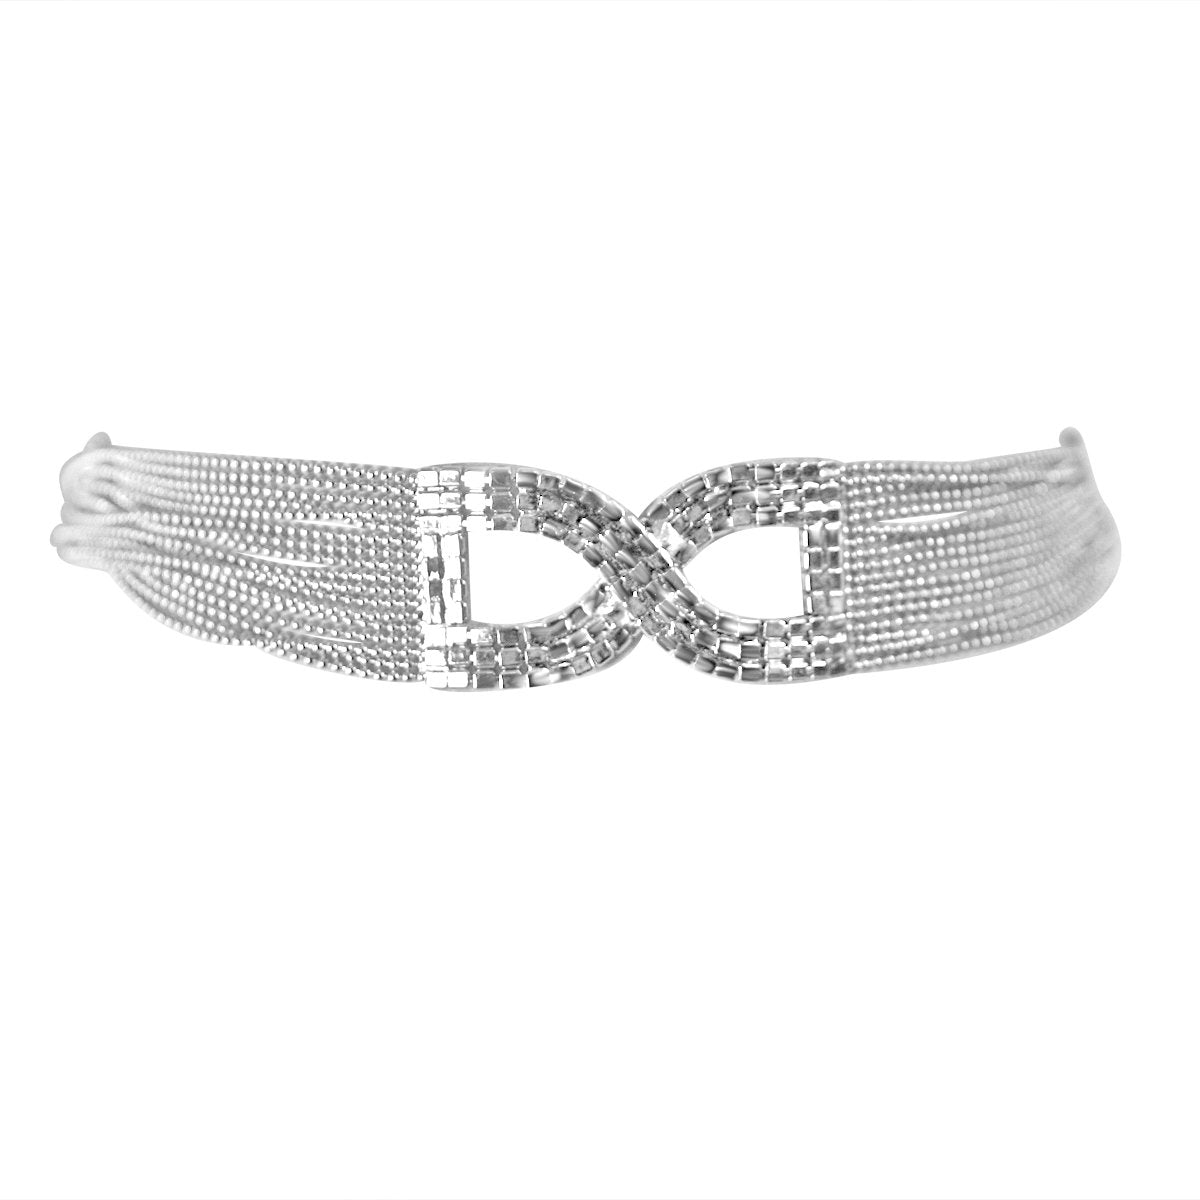 FINE CRYSTAL RHINESTONES PAVE BOW  CENTER ON MULTI-BEADS CHAIN CHOKER NECKLACE 700C721